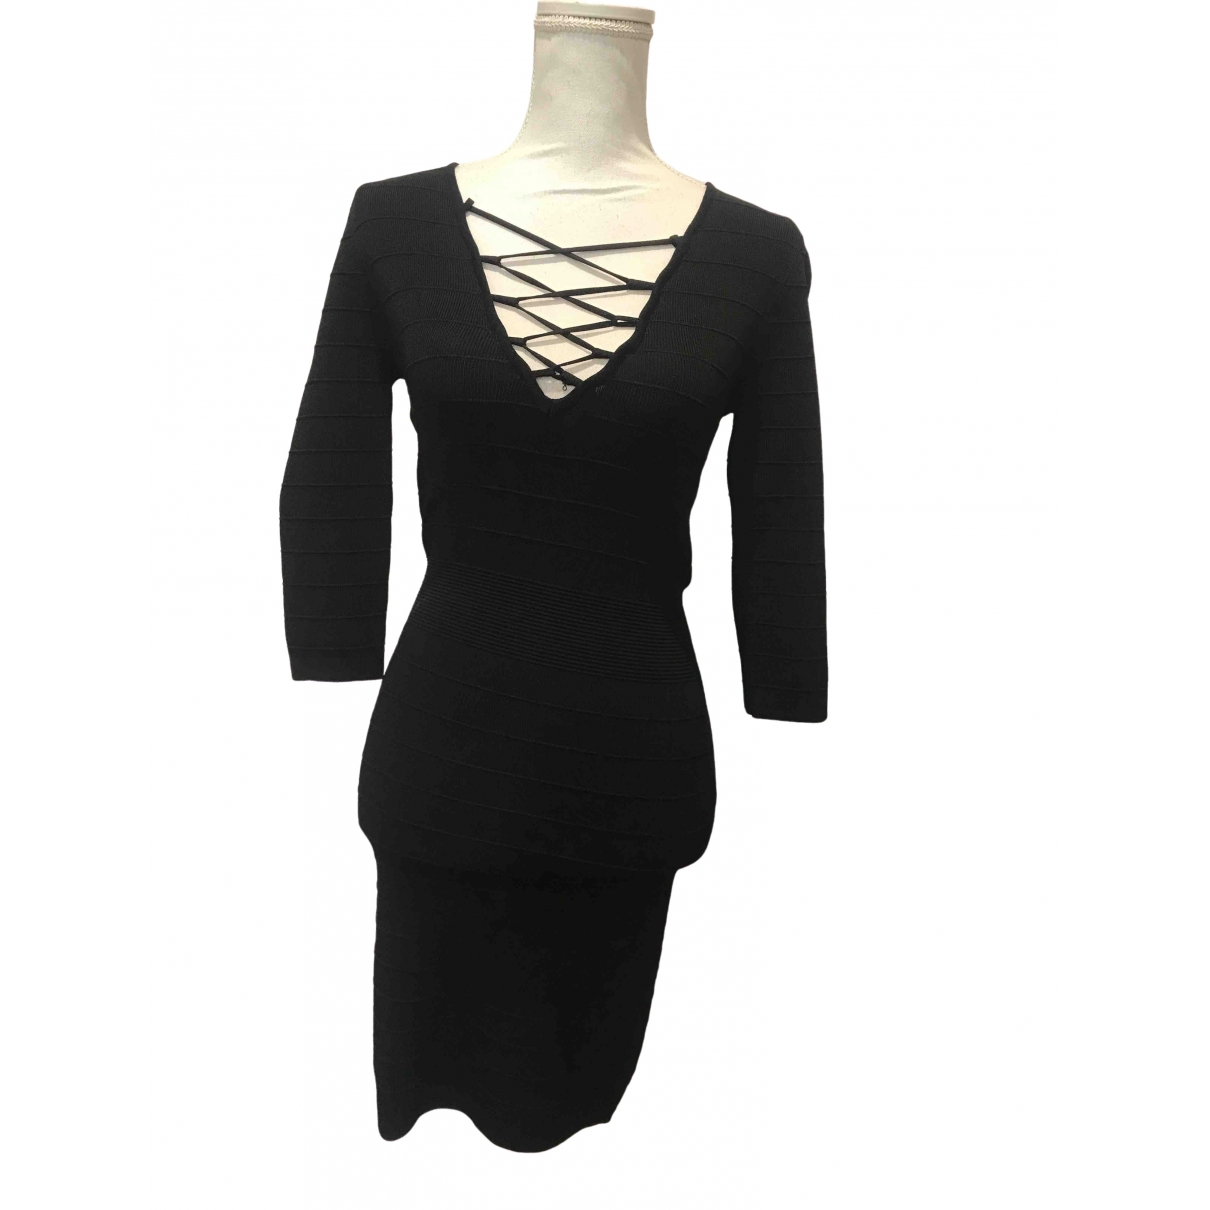 Mango \N Kleid in  Schwarz Synthetik